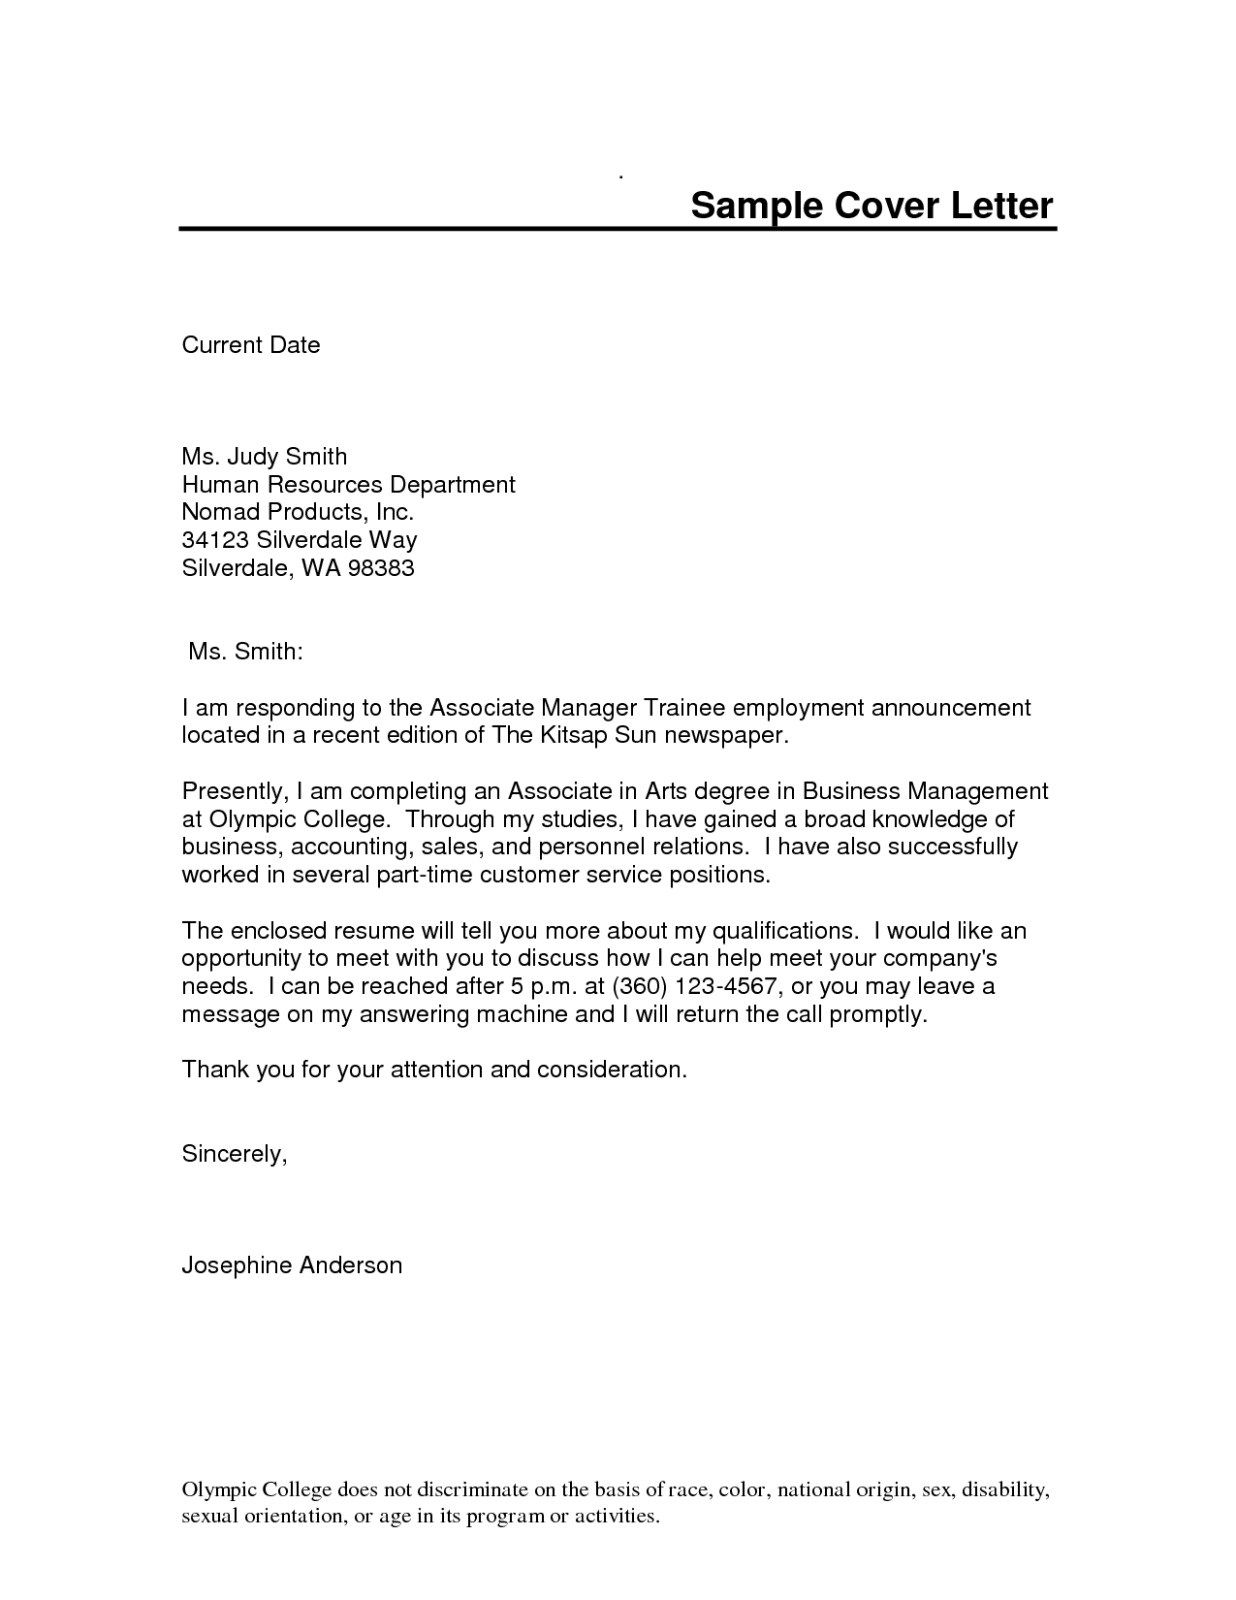 Letter Of Interest Template Microsoft Word 11 New Thoughts Regarding Letter Of Cover Letter Template Free Cover Letter For Resume Resume Cover Letter Template - ms word letter template